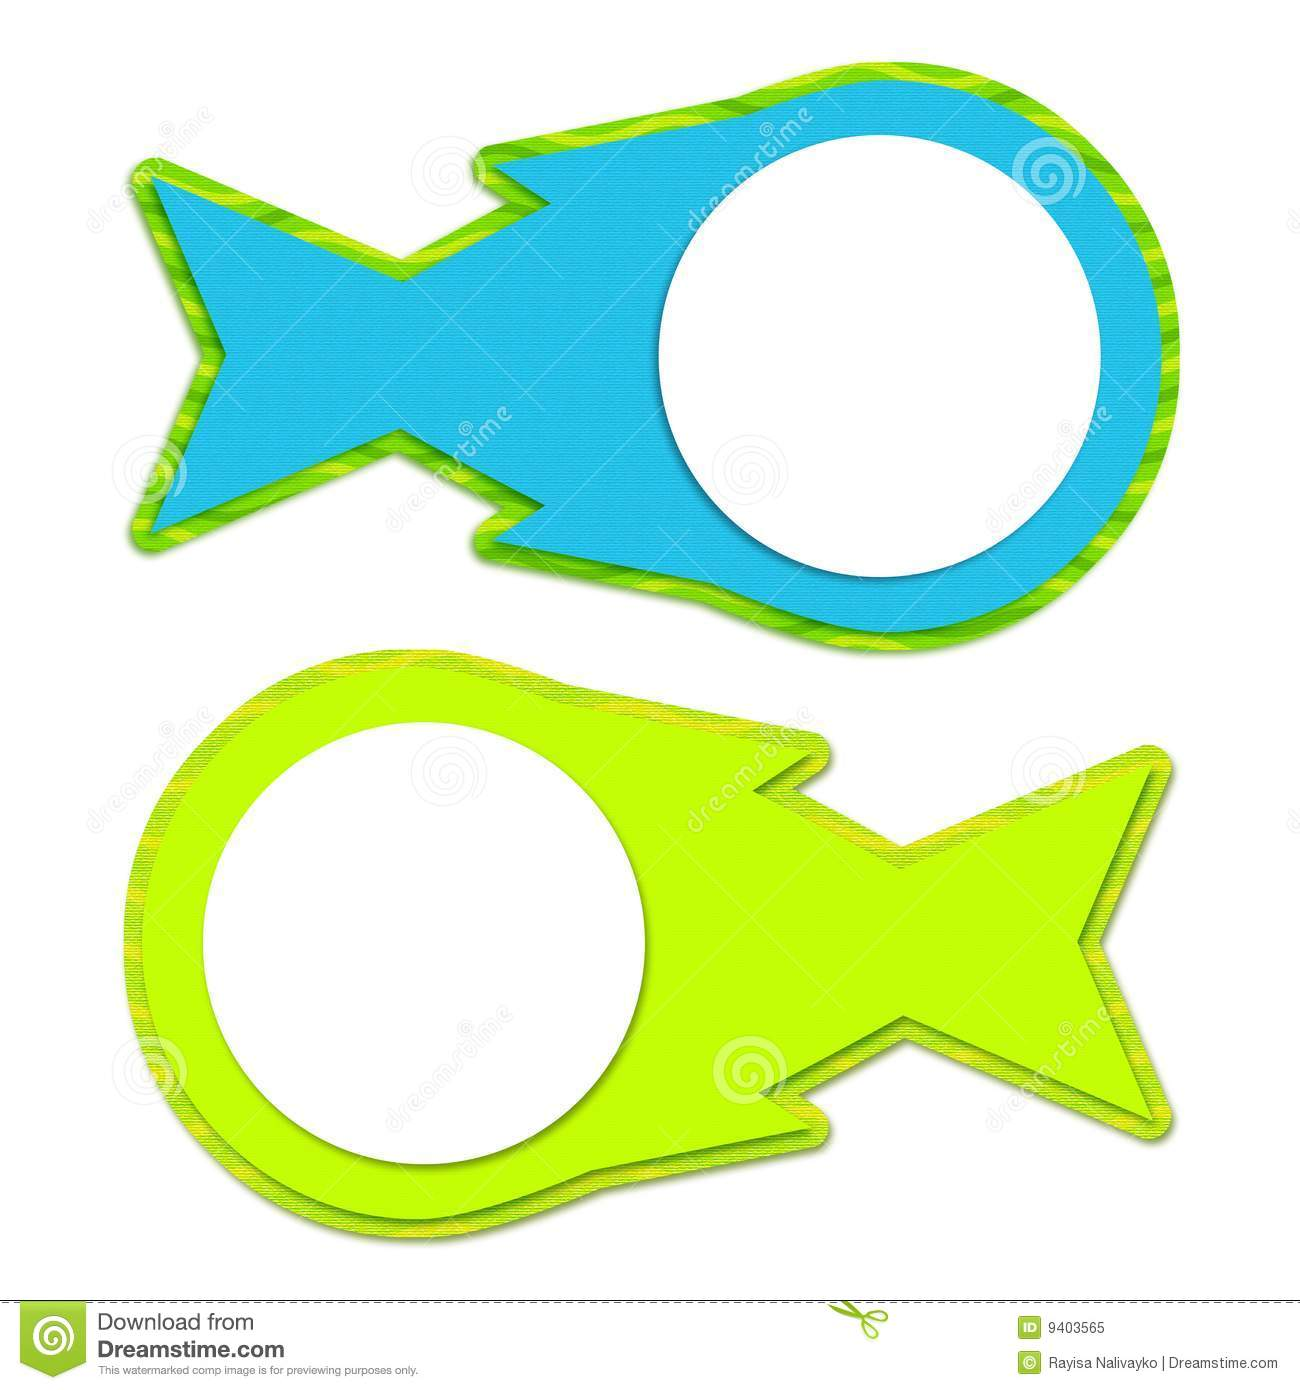 Two frame fish royalty free stock photo image 9403565 for Fish photo frame